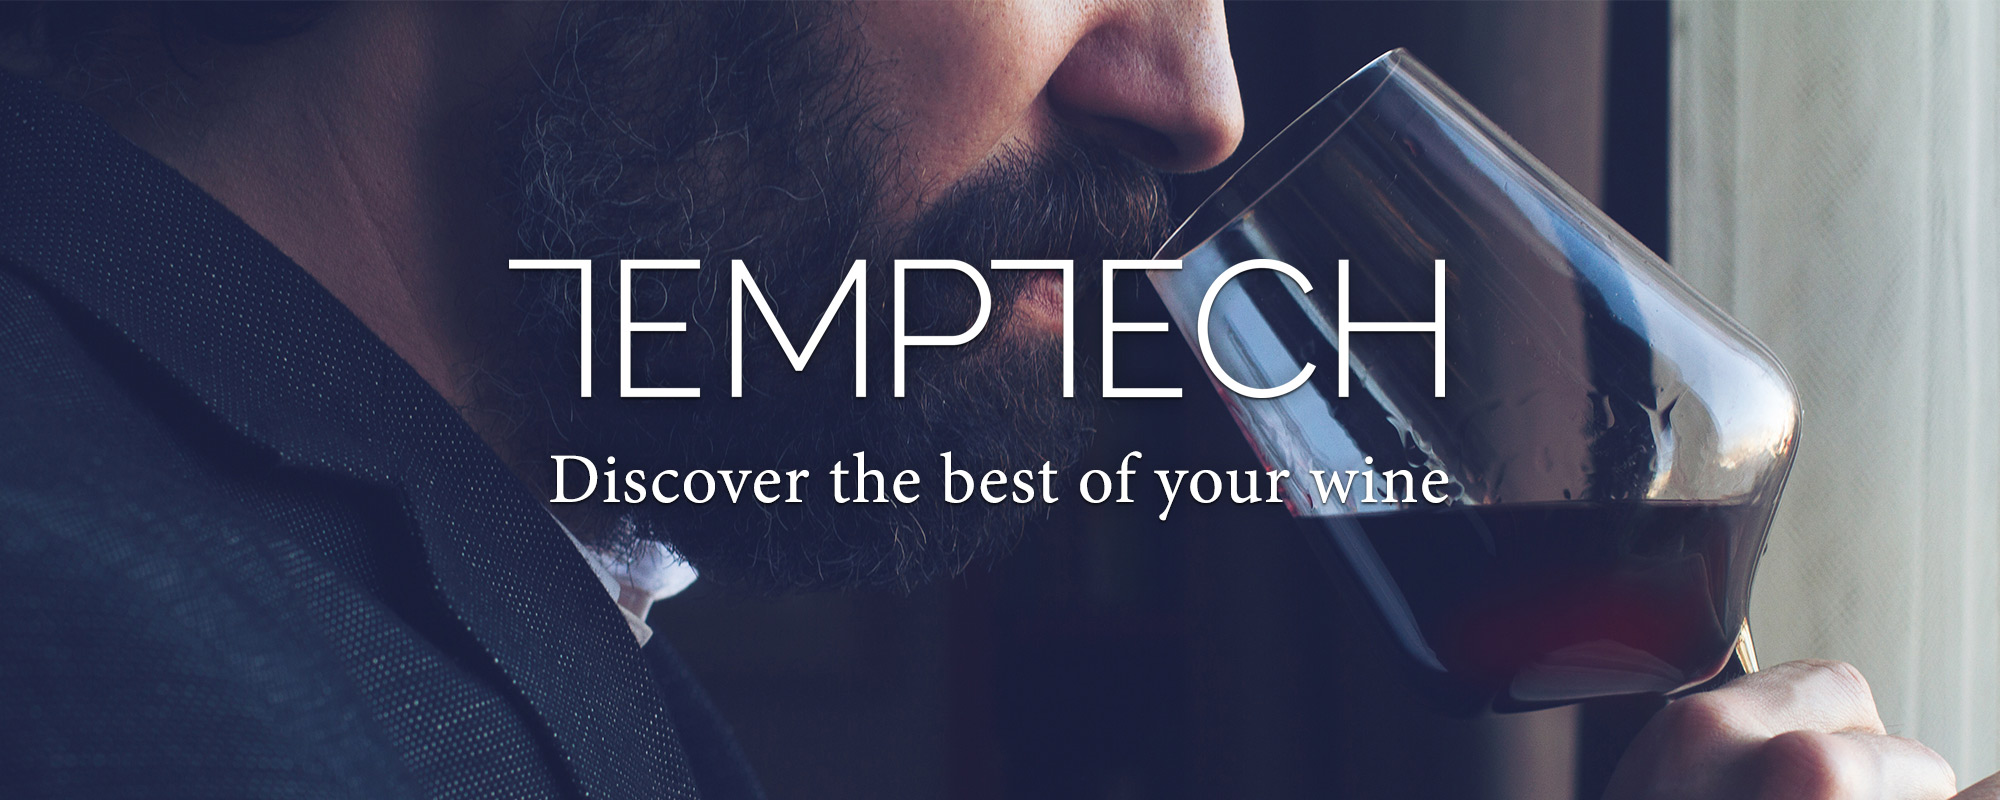 Temptech - Discover the best of your wine